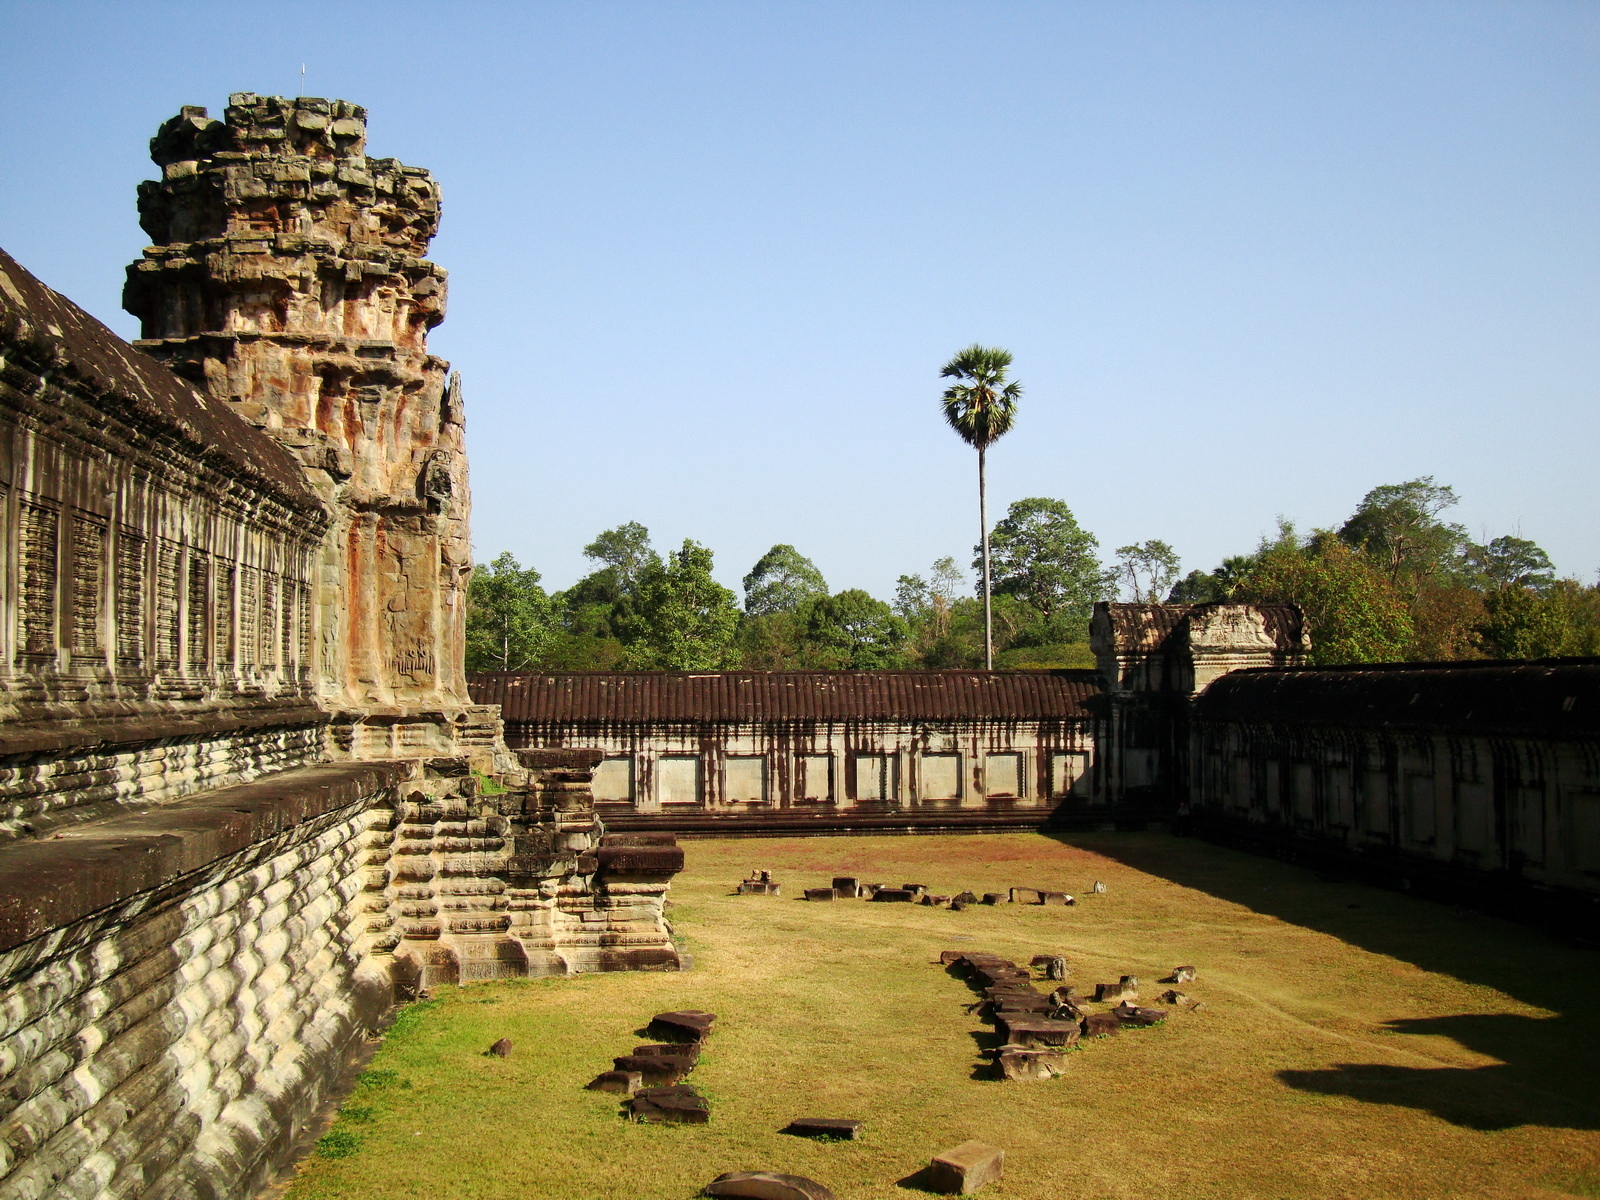 Angkor Wat Khmer architecture internal gallery E entrance 16